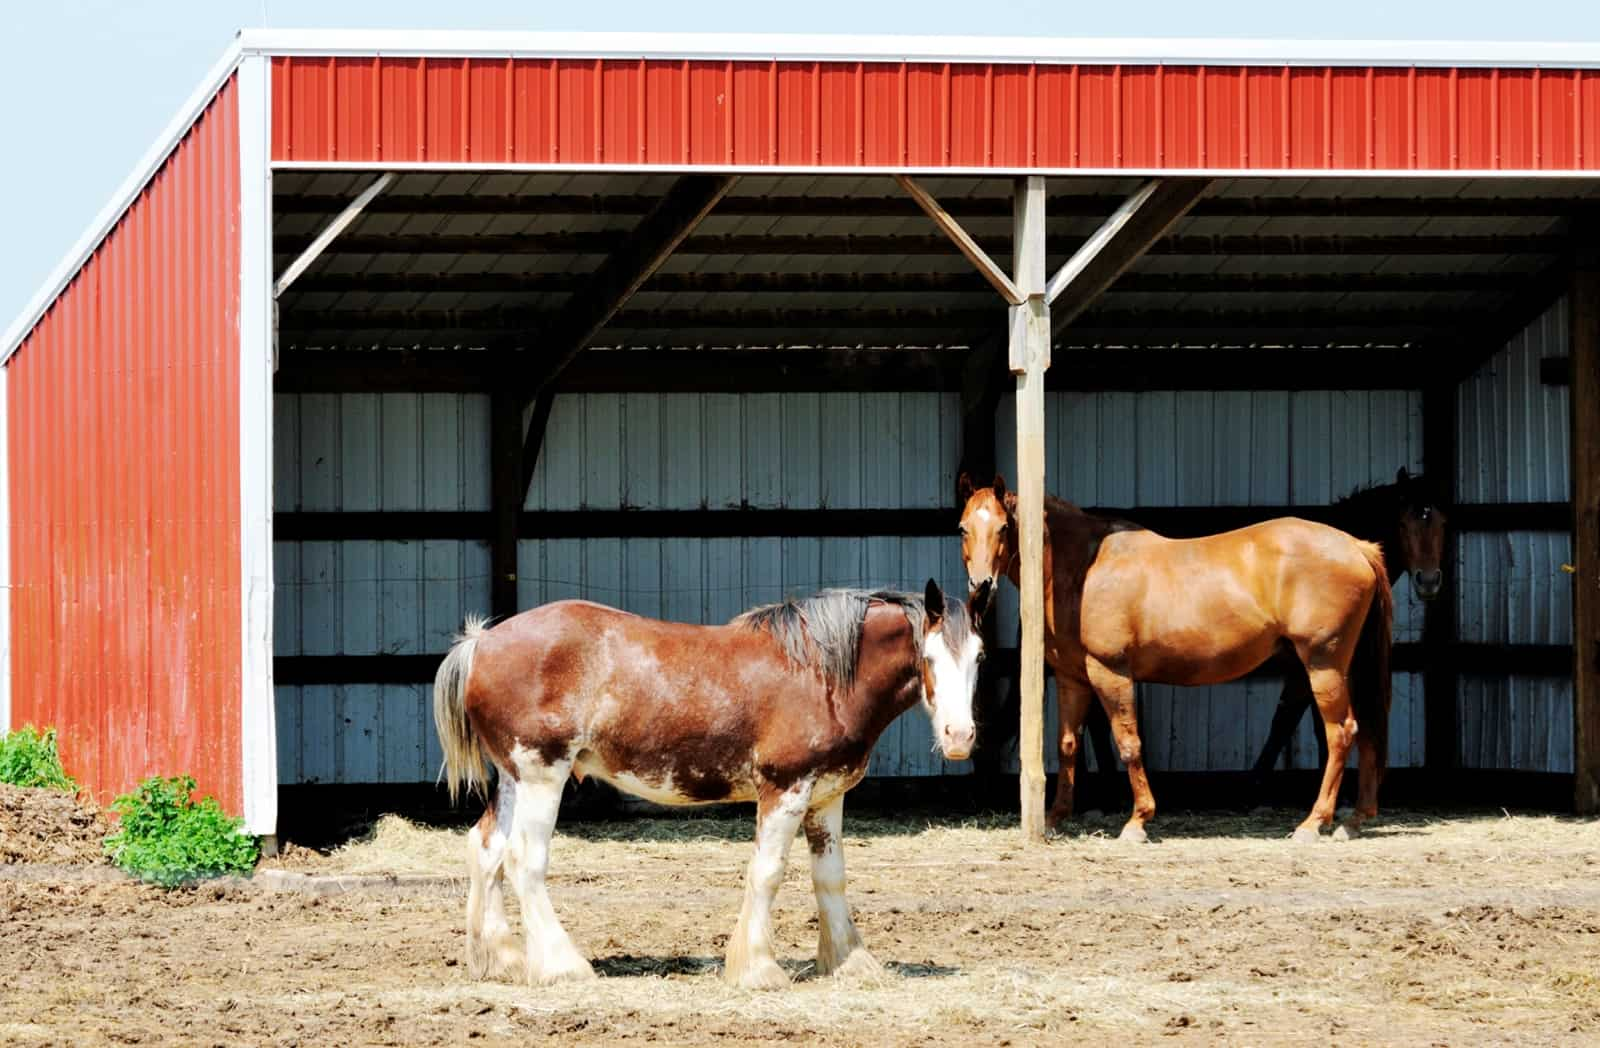 T Restrict Horses To Shelters In Hot